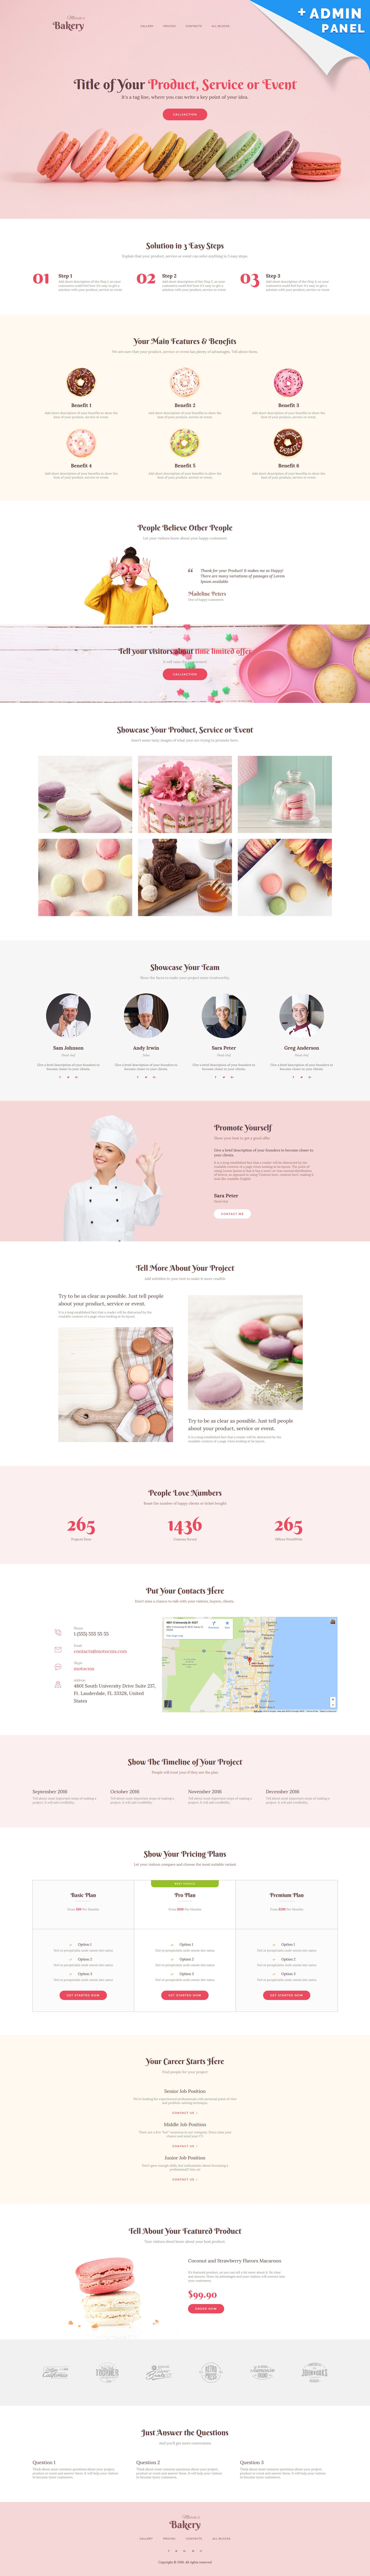 Responsivt Landing Page-mall #59196